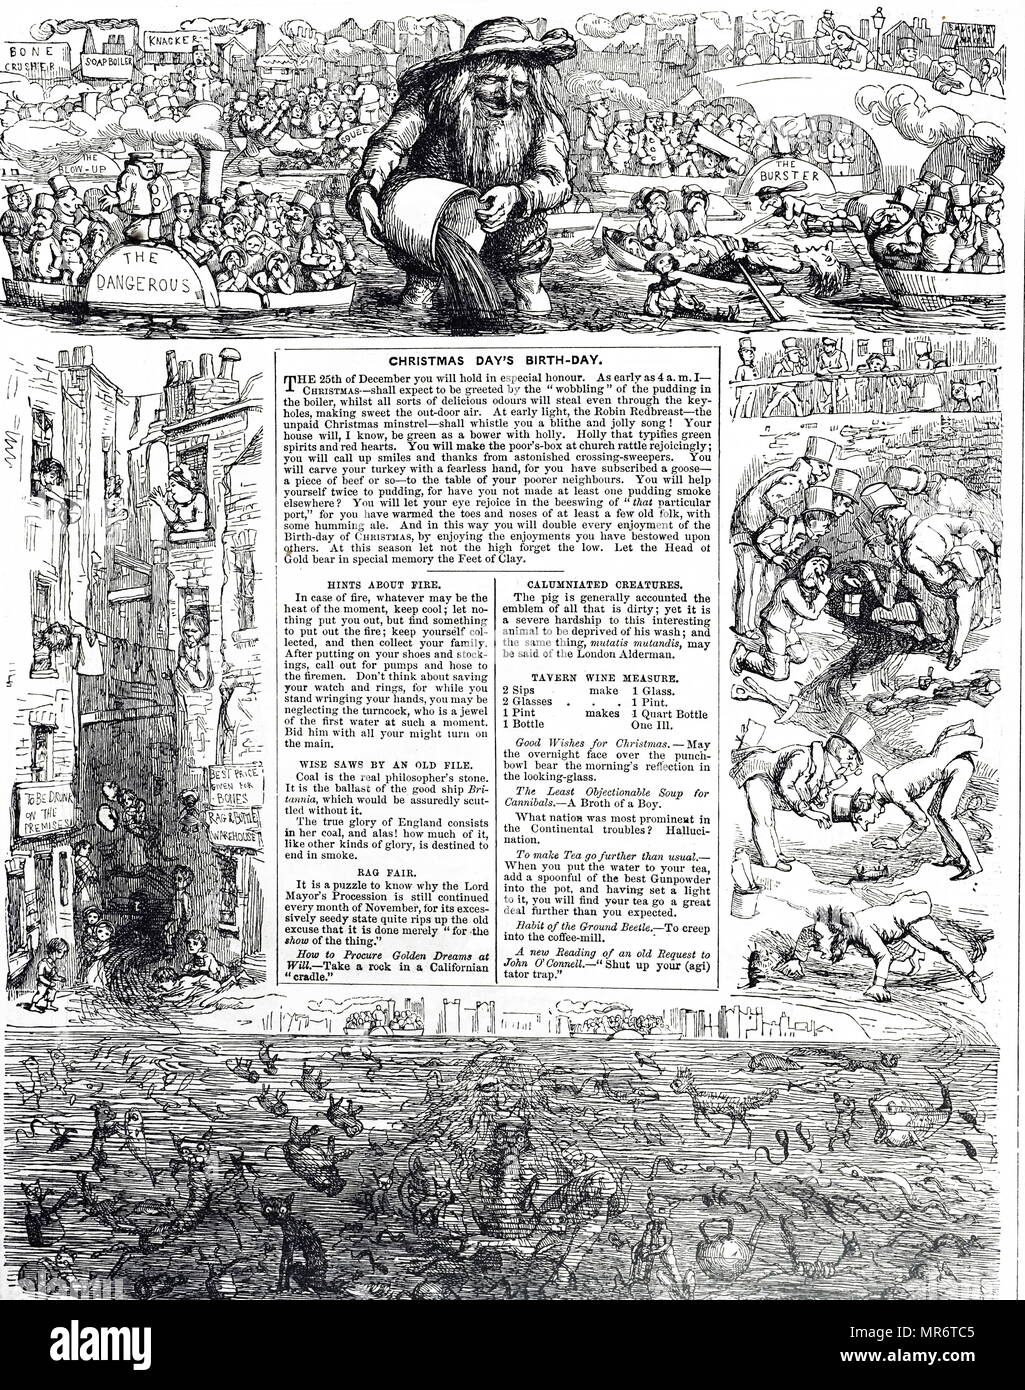 Punch commenting on the unhealthy state of London's sanitation. Dated 19th century - Stock Image